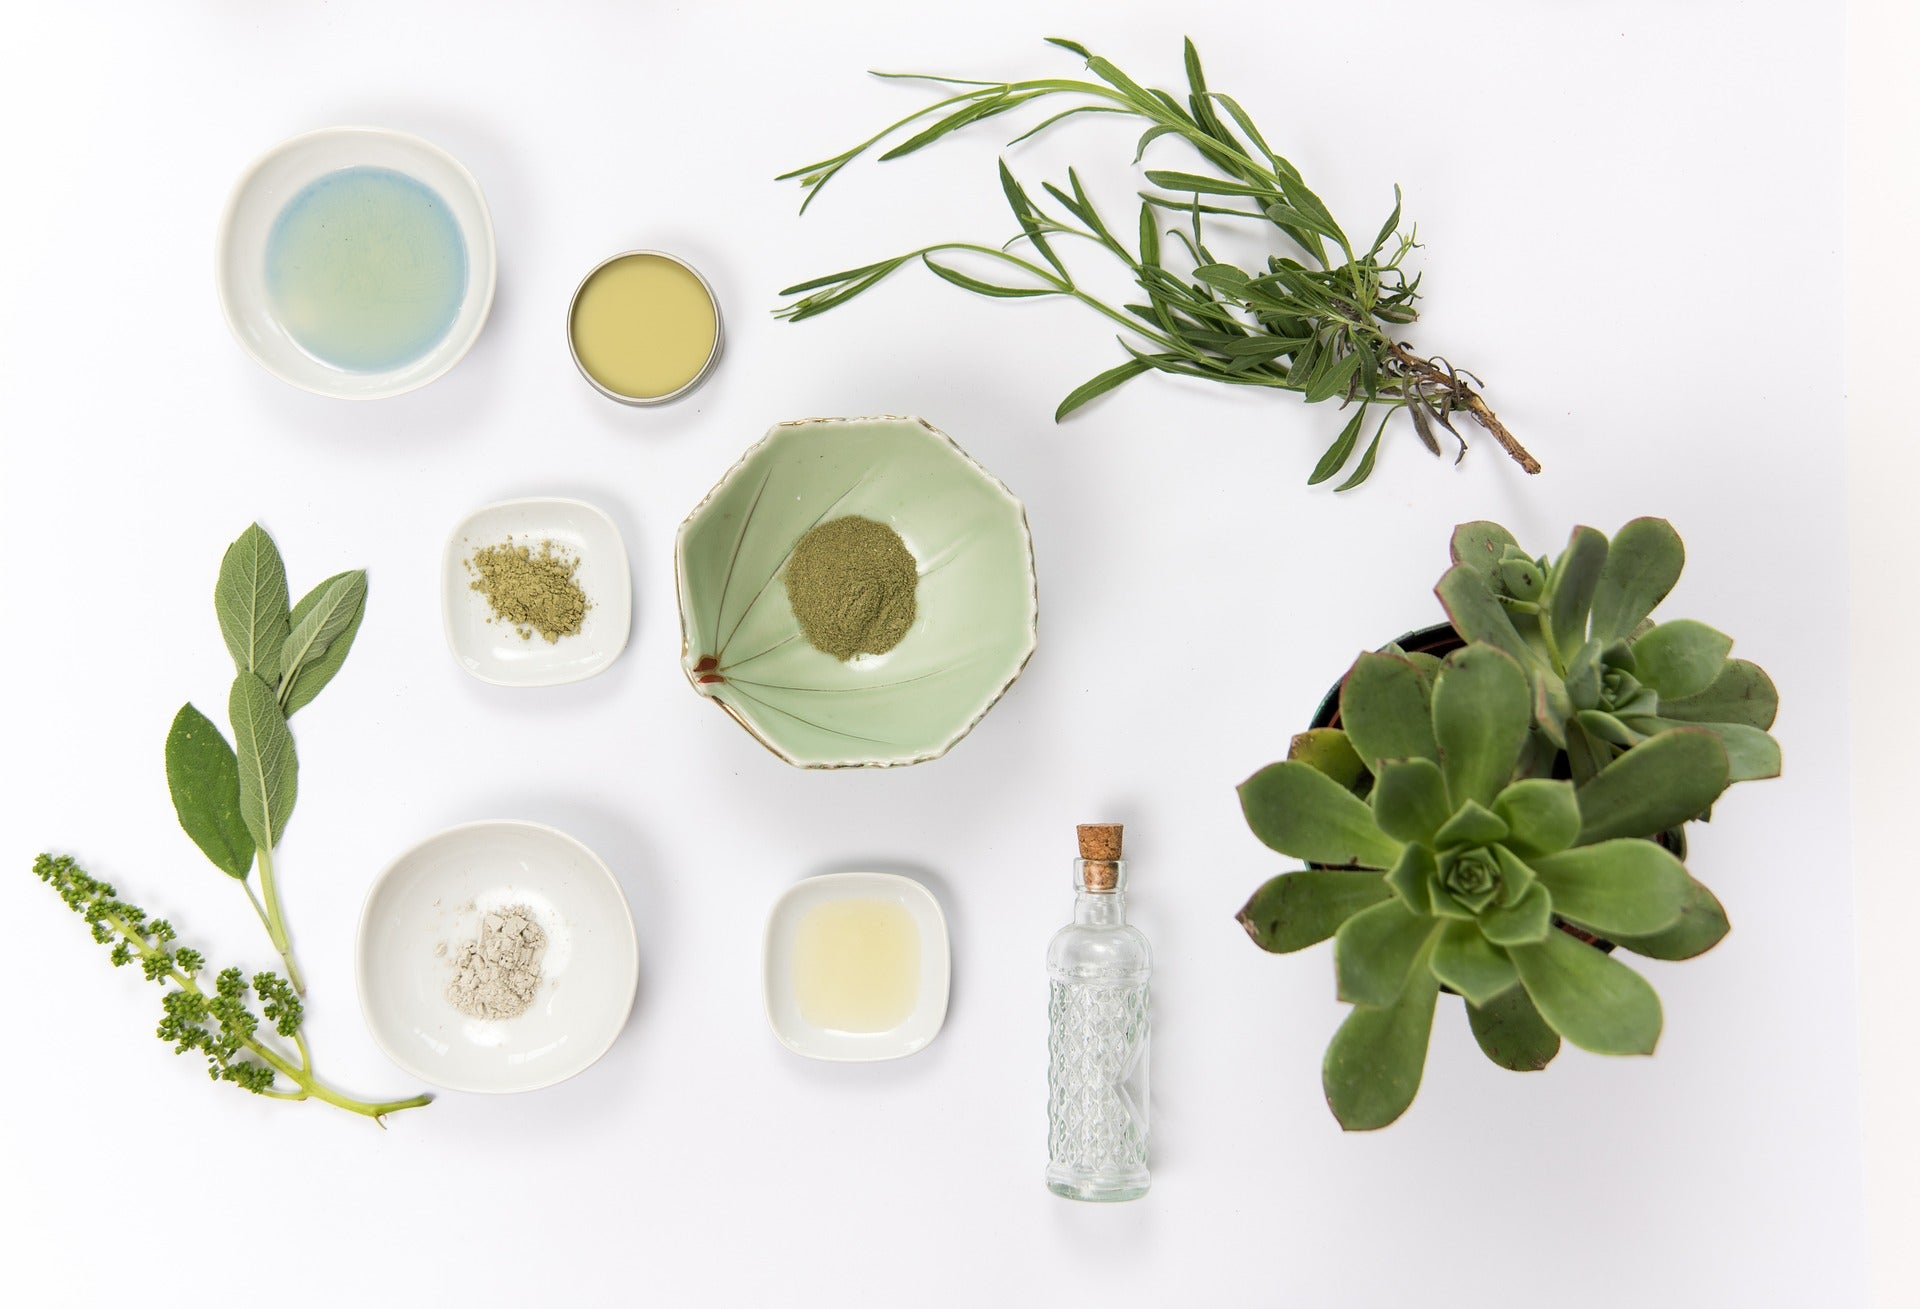 Create natural beauty products at home